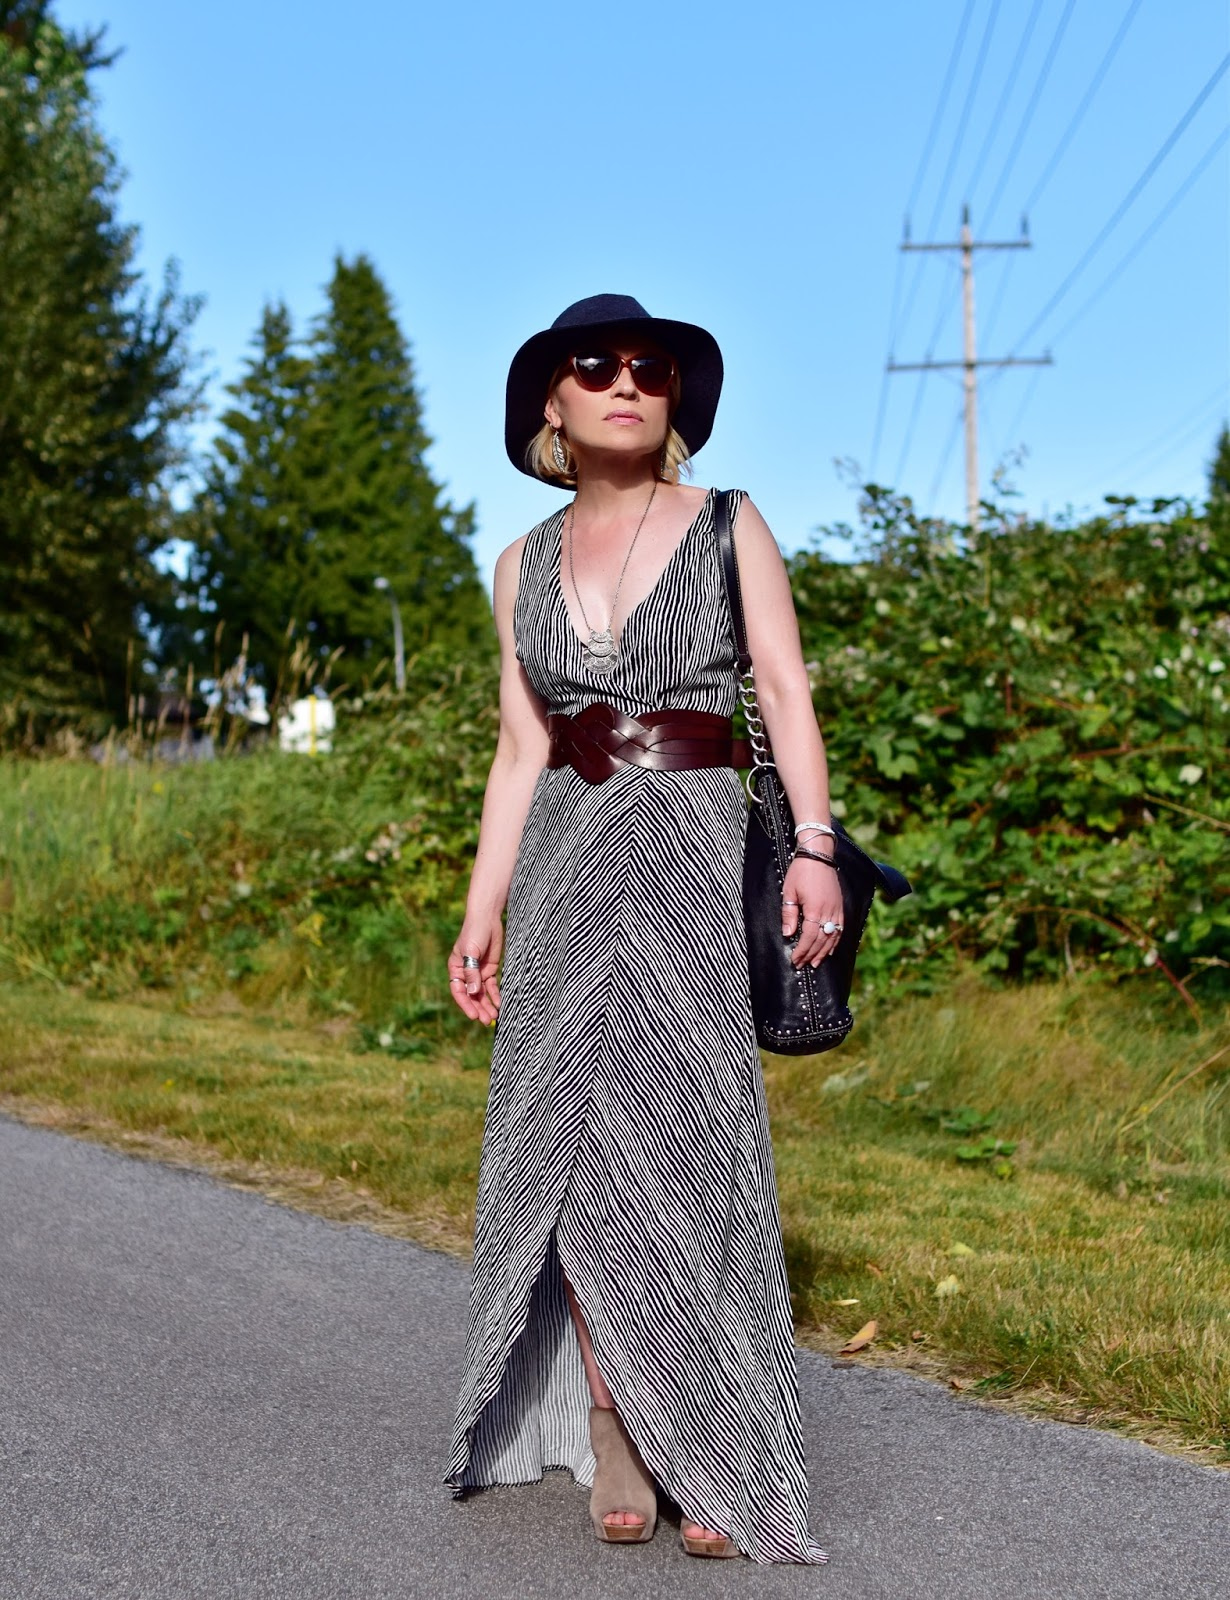 Monika Faulkner styles a striped maxi-dress with a corset belt, open-toe wedge booties, and a floppy hat